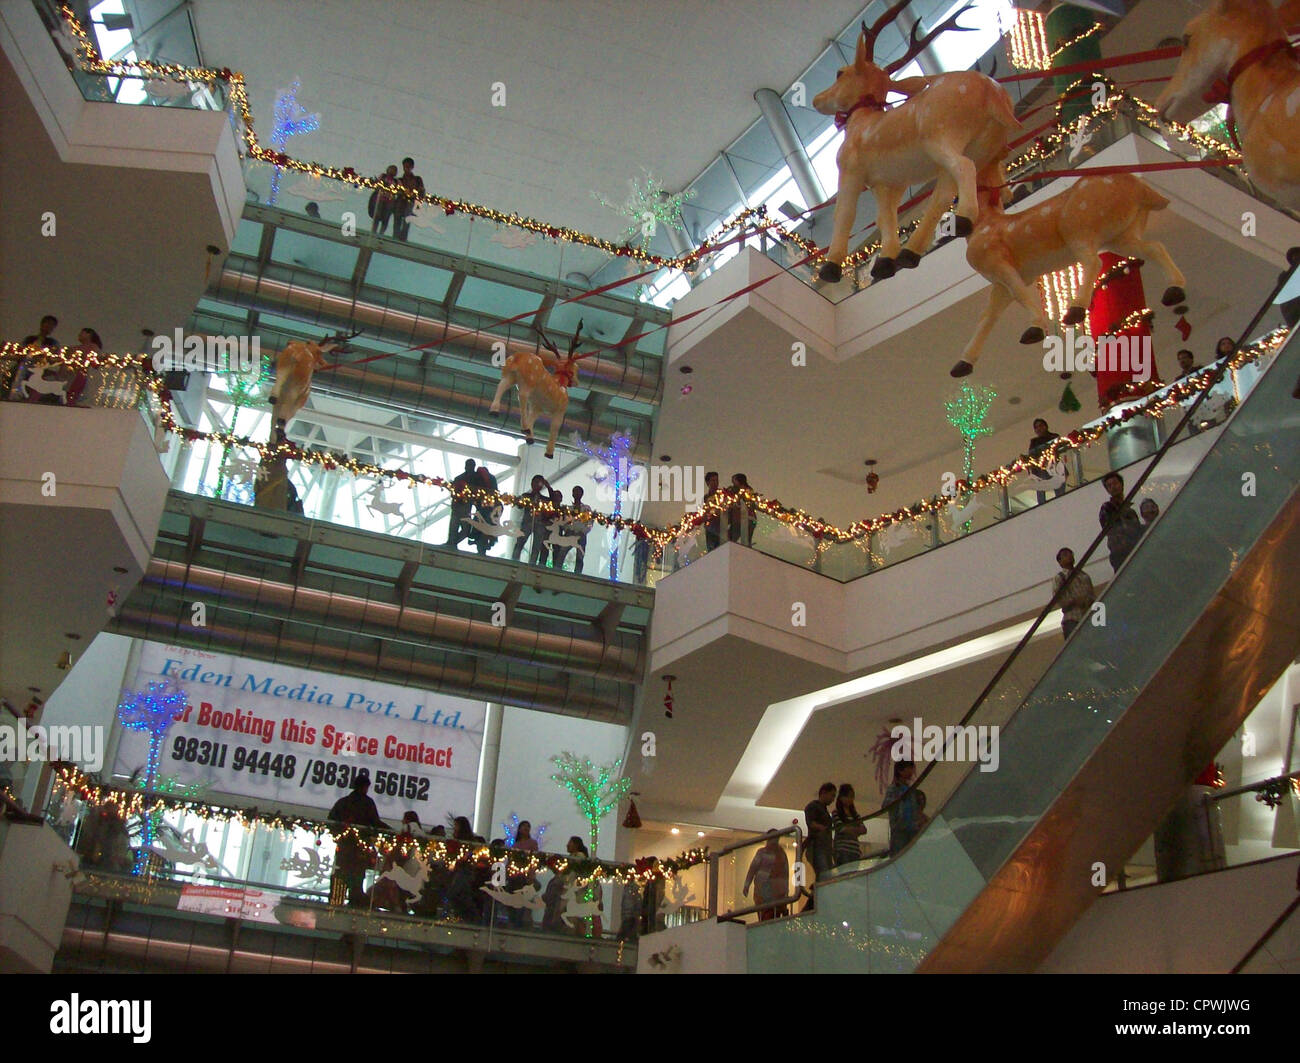 Inside the South City shopping mall on 26th December, 2011. - Stock Image